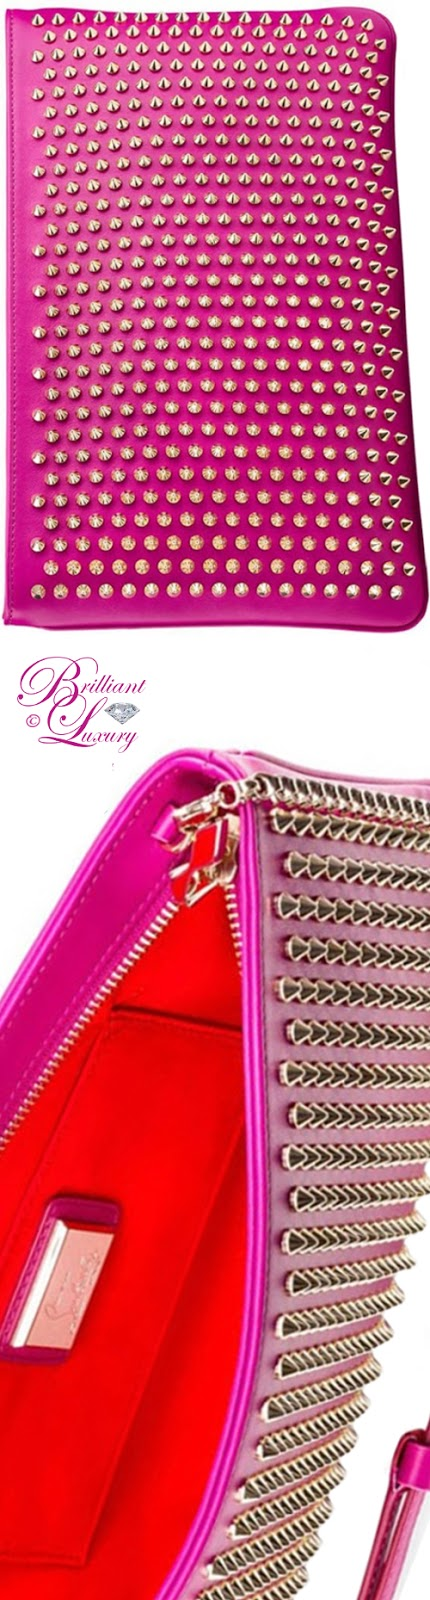 Brilliant Luxury ♦ Christian Louboutin studded Loubiposh clutch